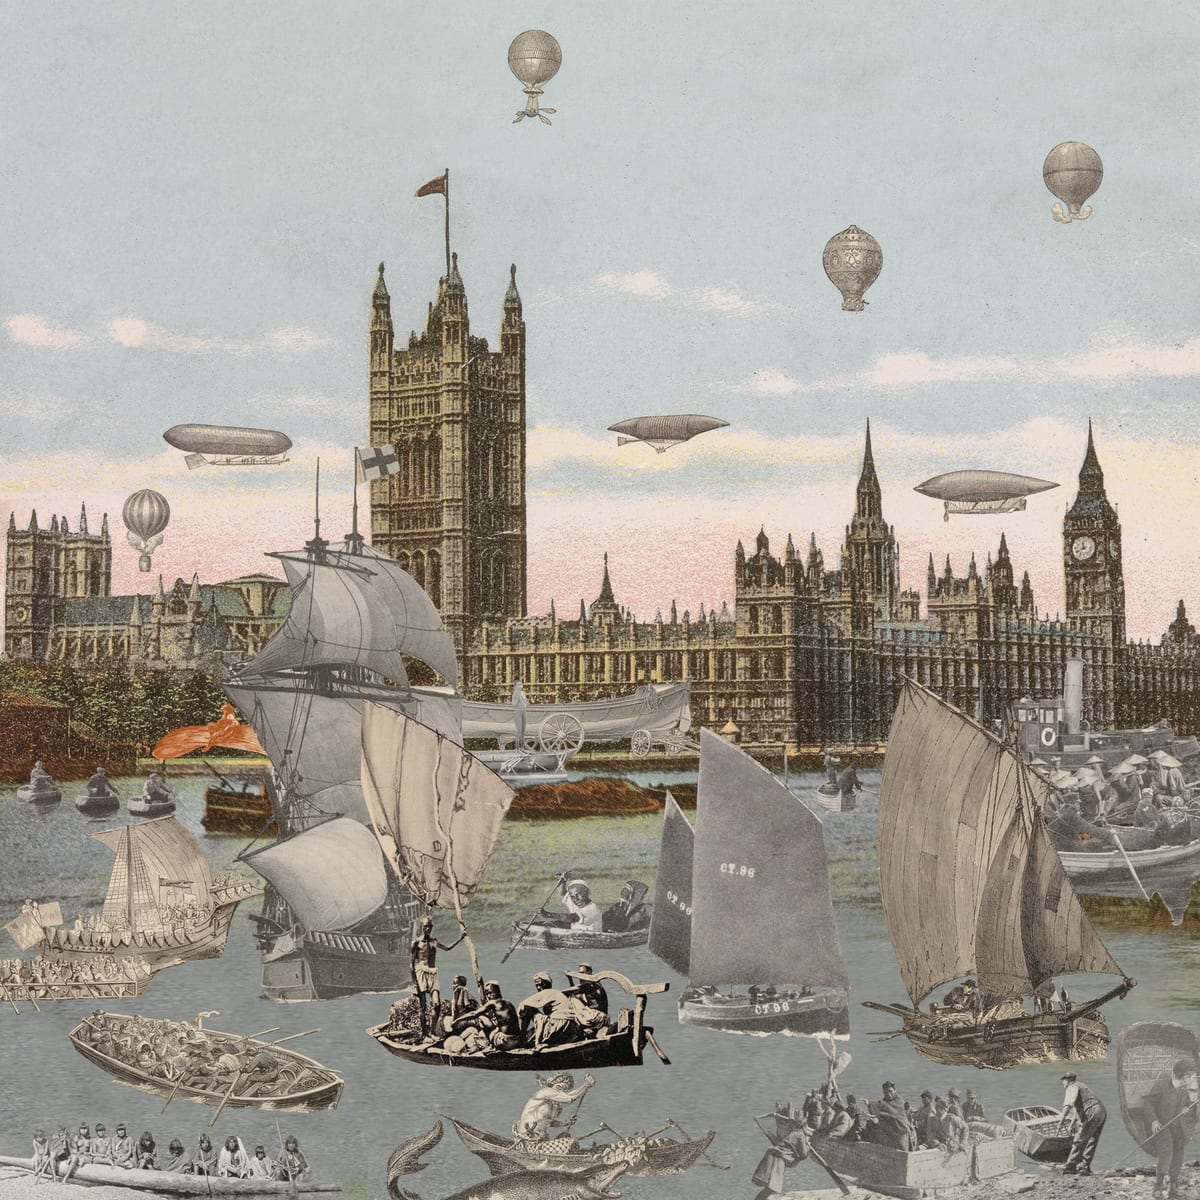 Peter Blake London- River Thames- Regatta, 2013 Inkjet and glaze on canvas Signed and numbered by the artist 128.8 x 130cm Edition of 8